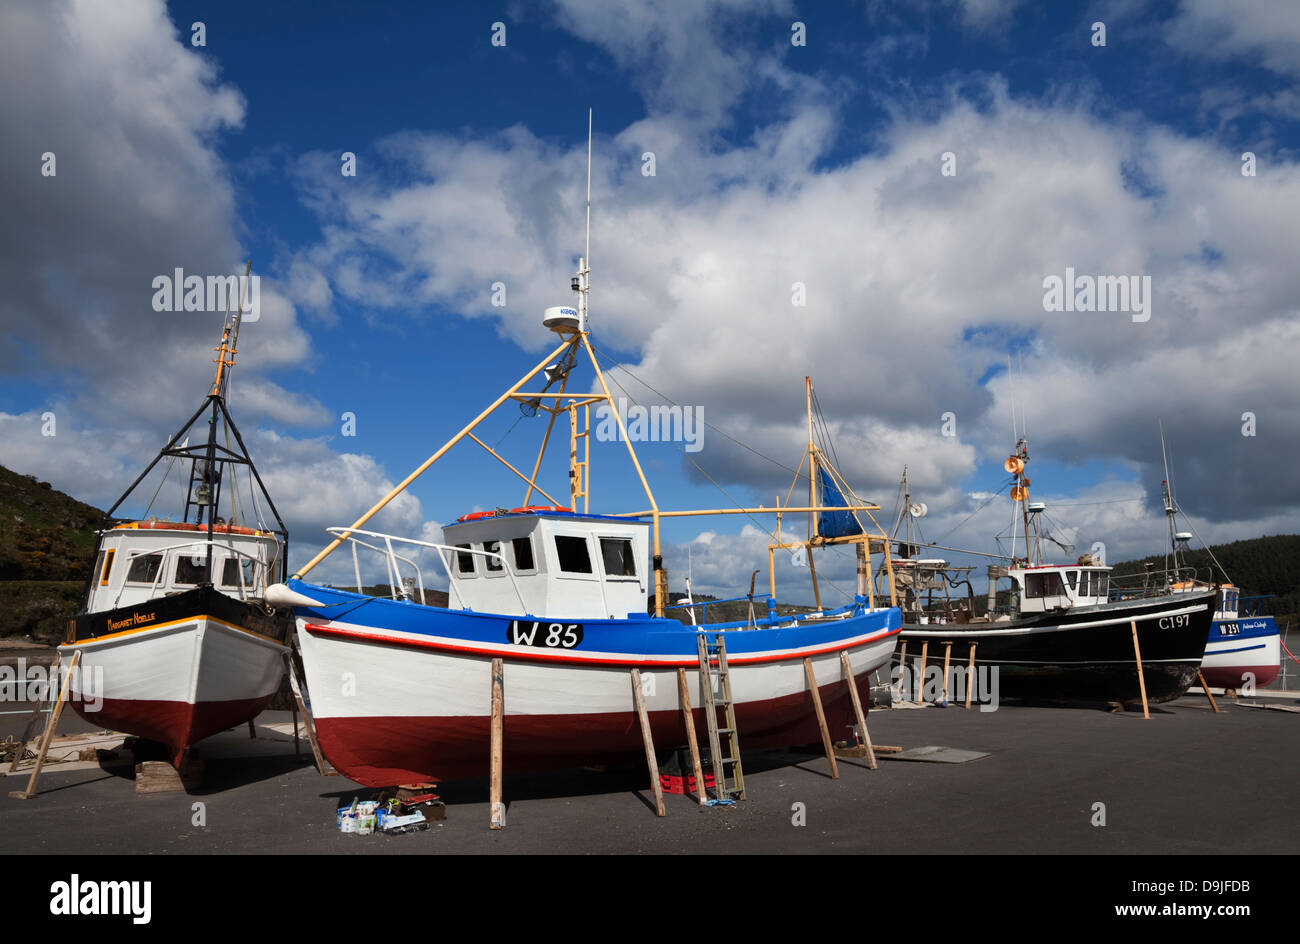 The Harbour and Fishing Boats, Passage East, County Waterford, Ireland - Stock Image